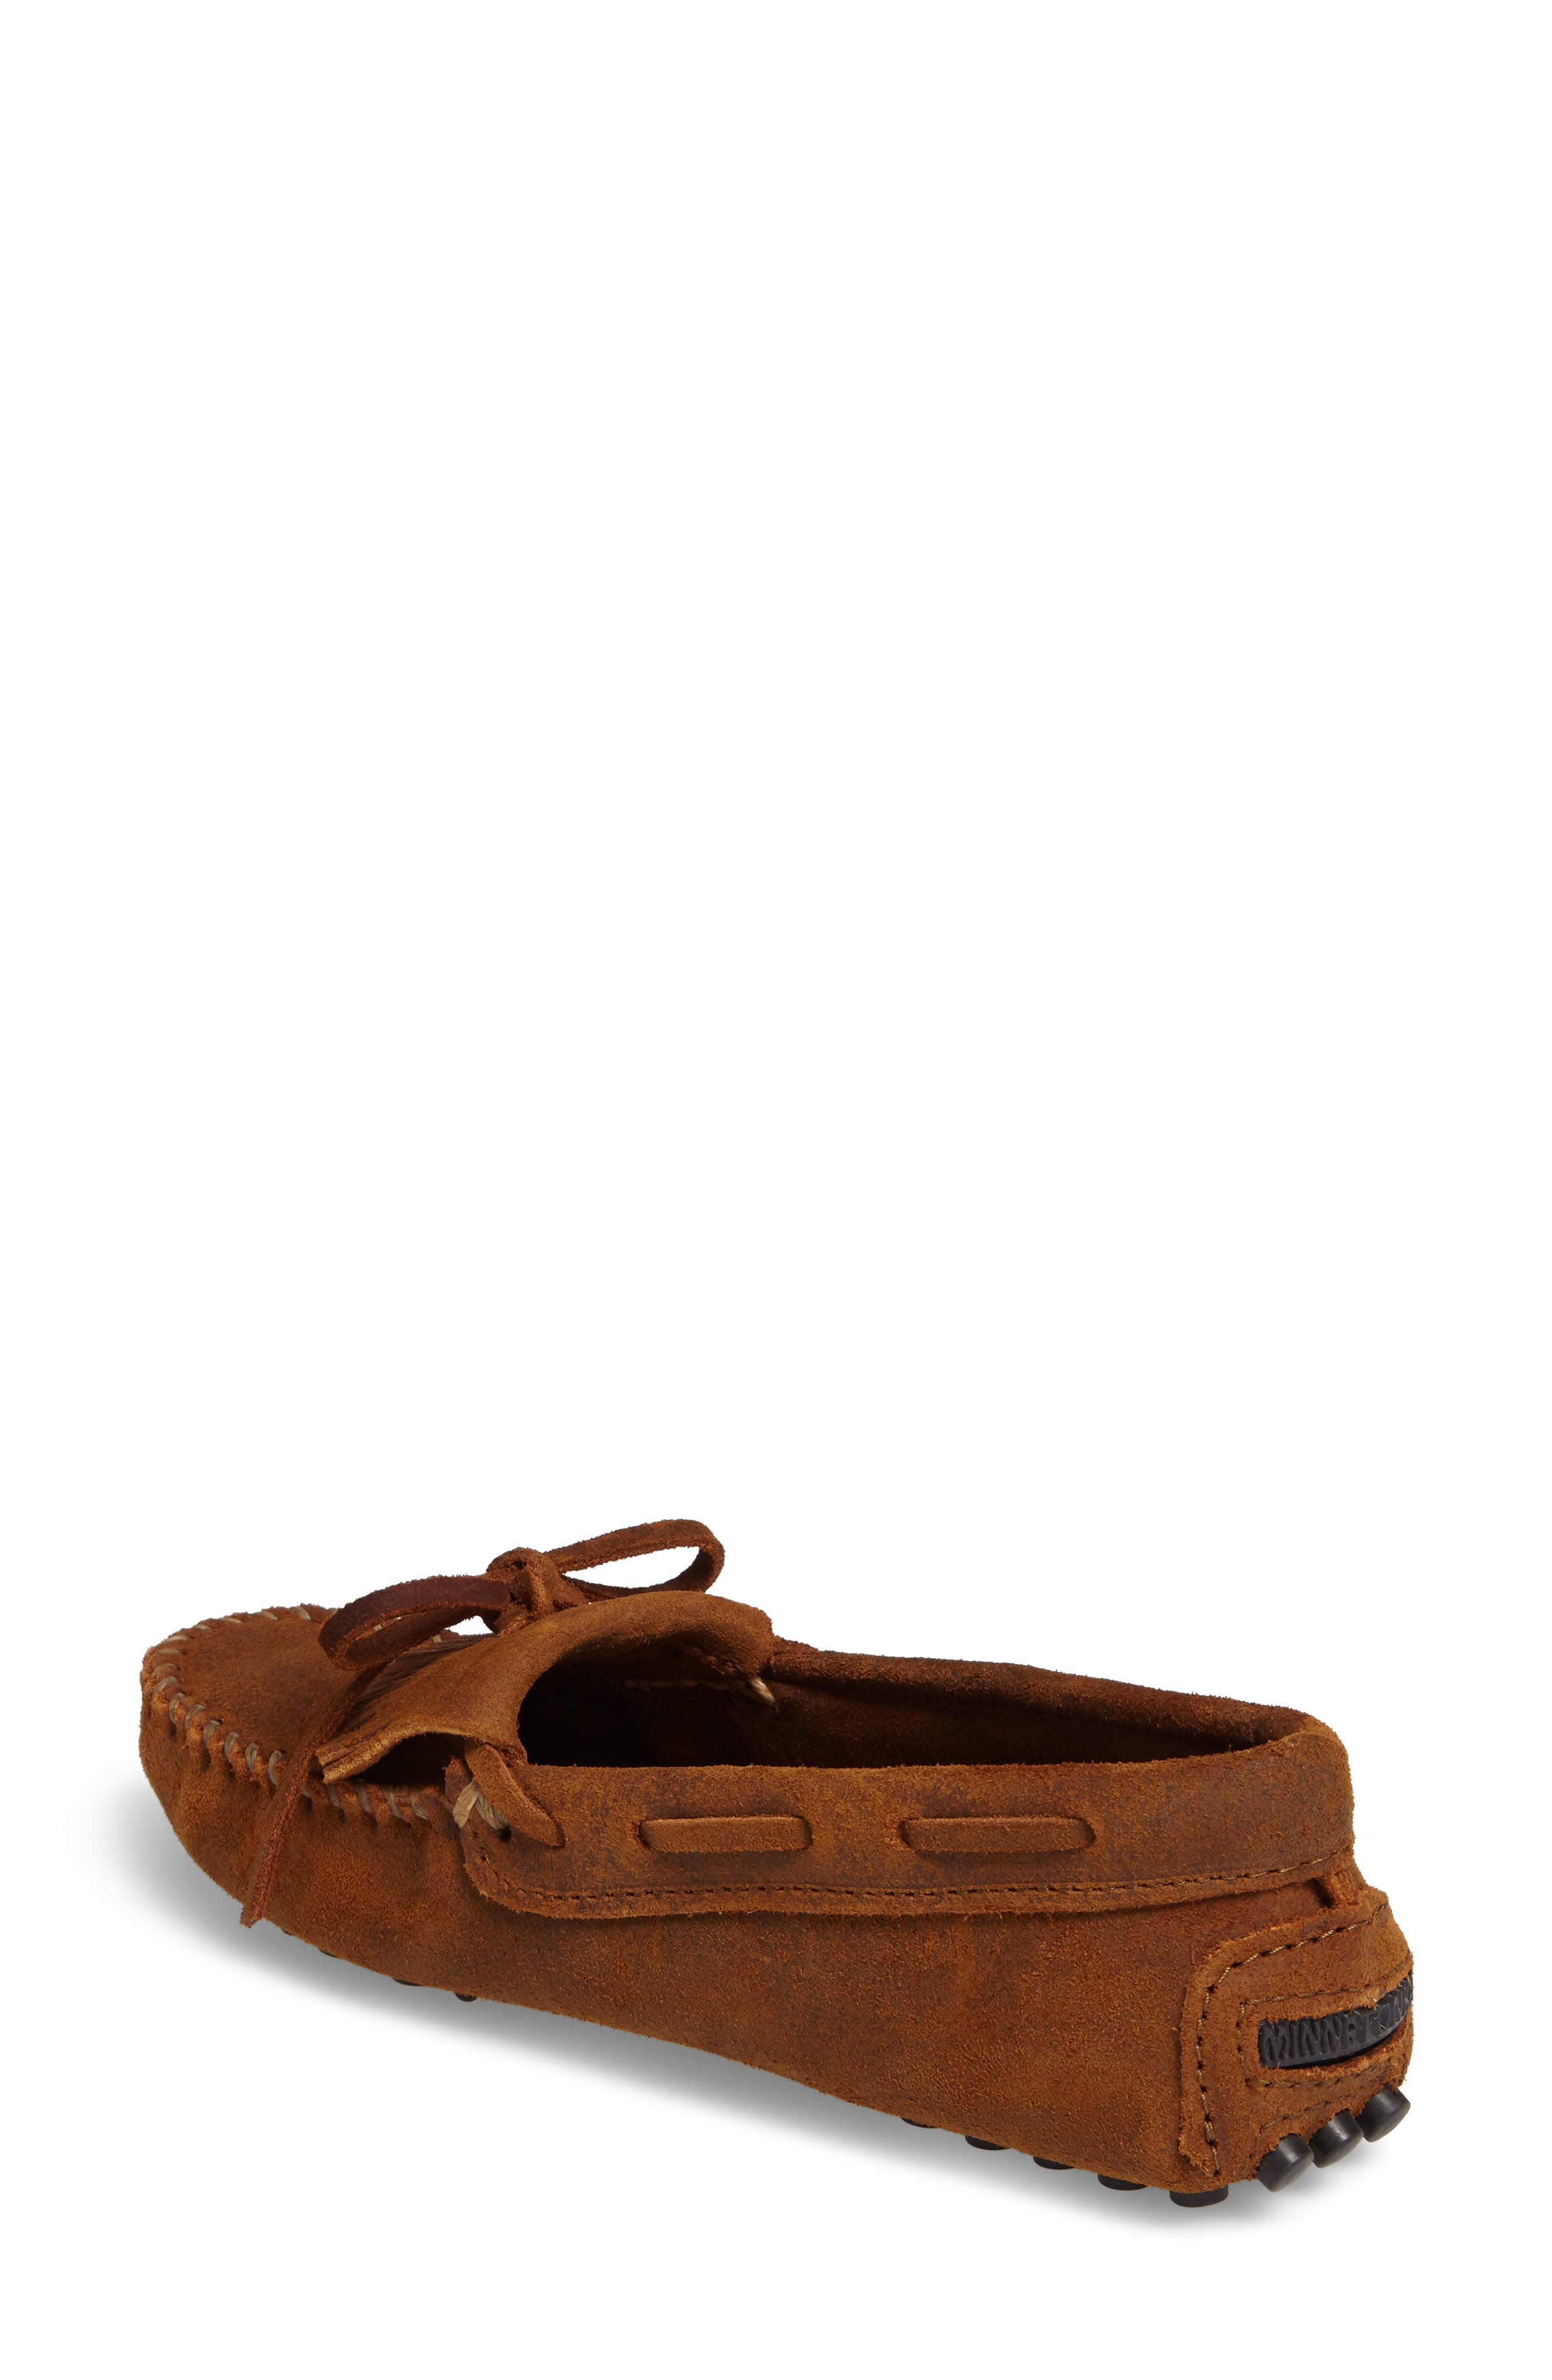 Kilty Driving Moccasin,                             Alternate thumbnail 2, color,                             BROWN RUFF